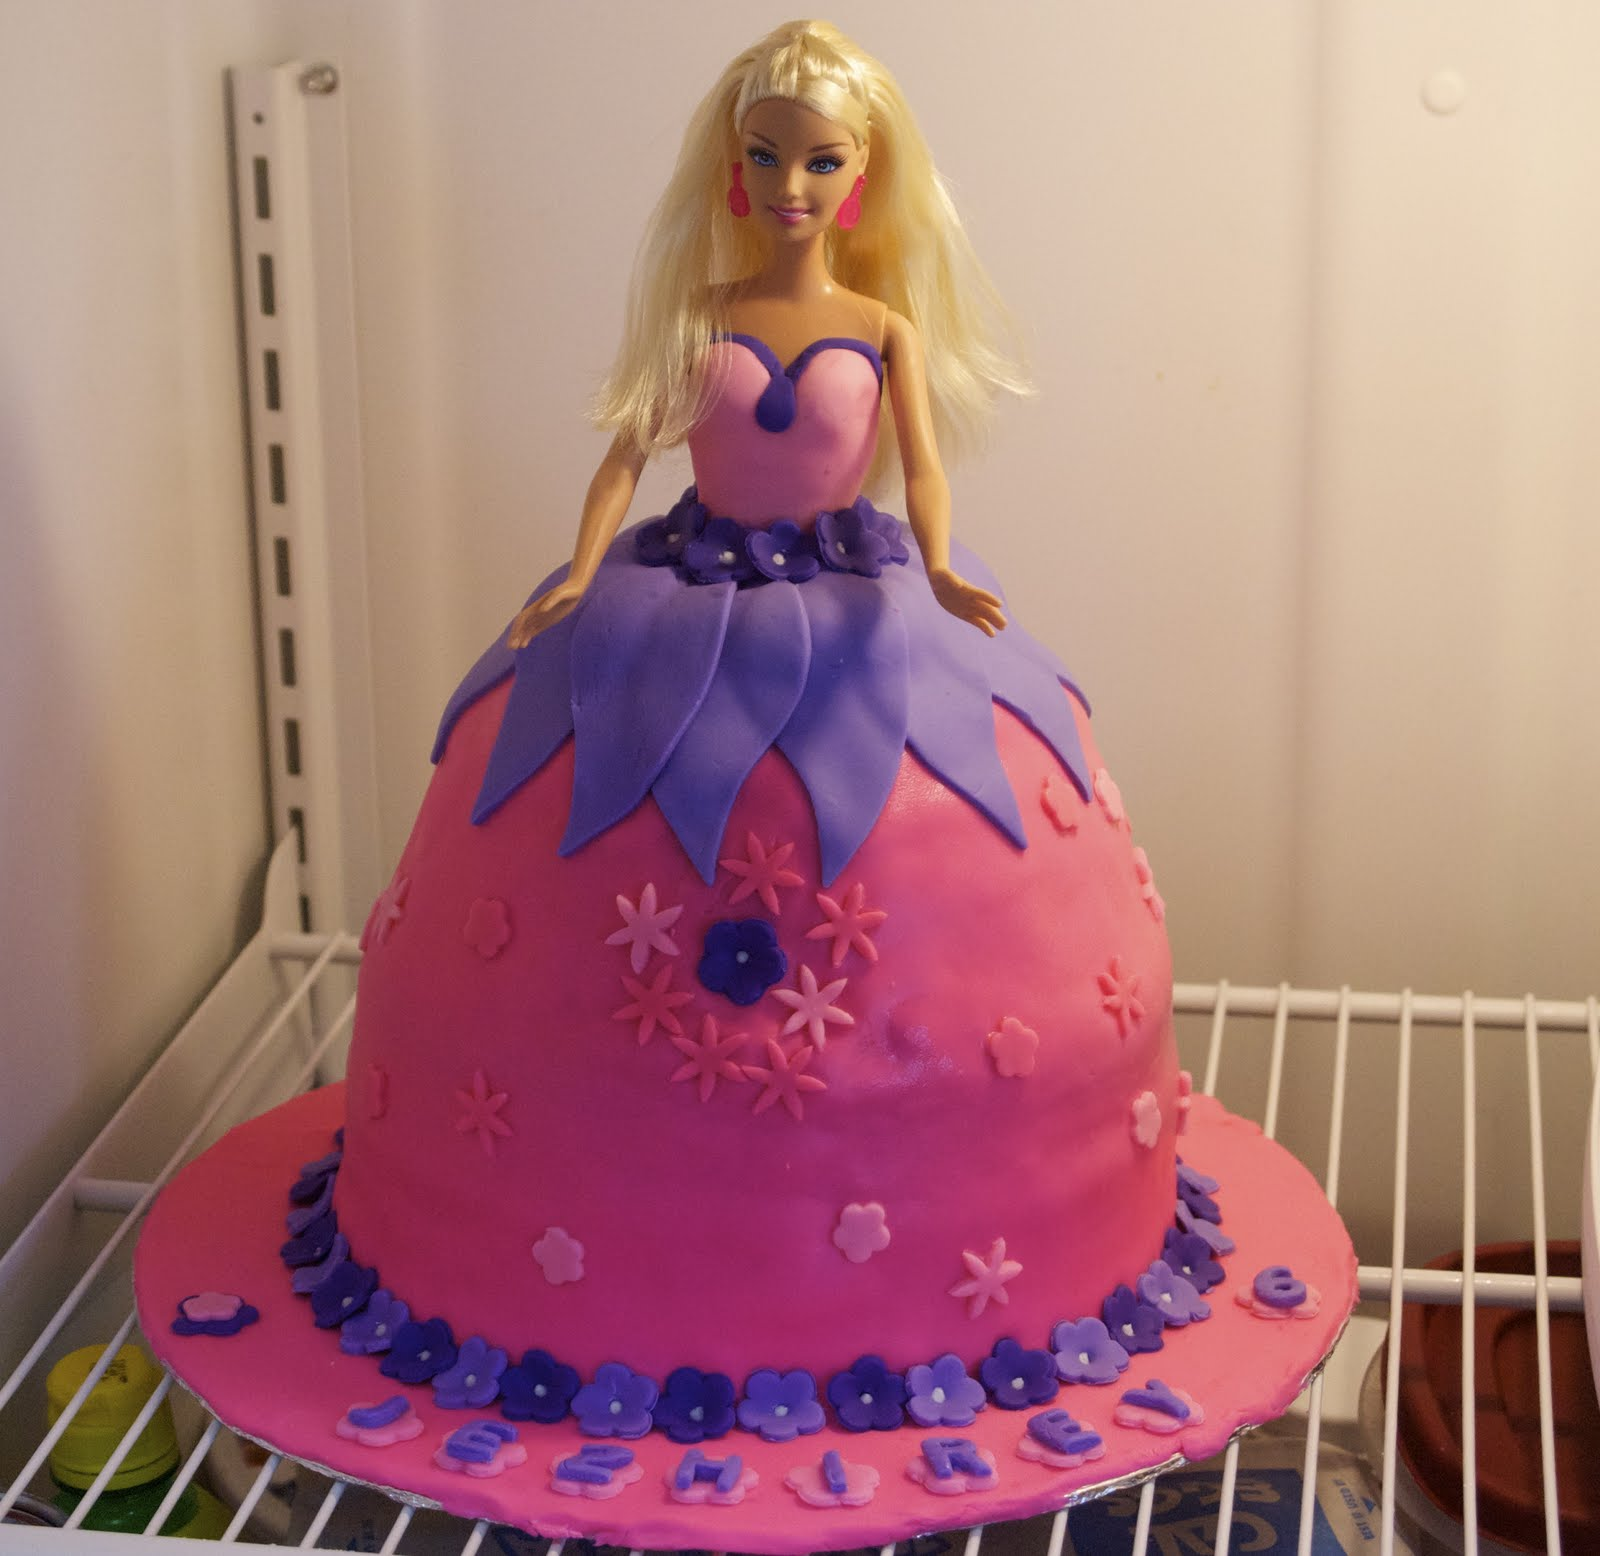 Barbie Cake Recipe Uk Kayarecipe Co